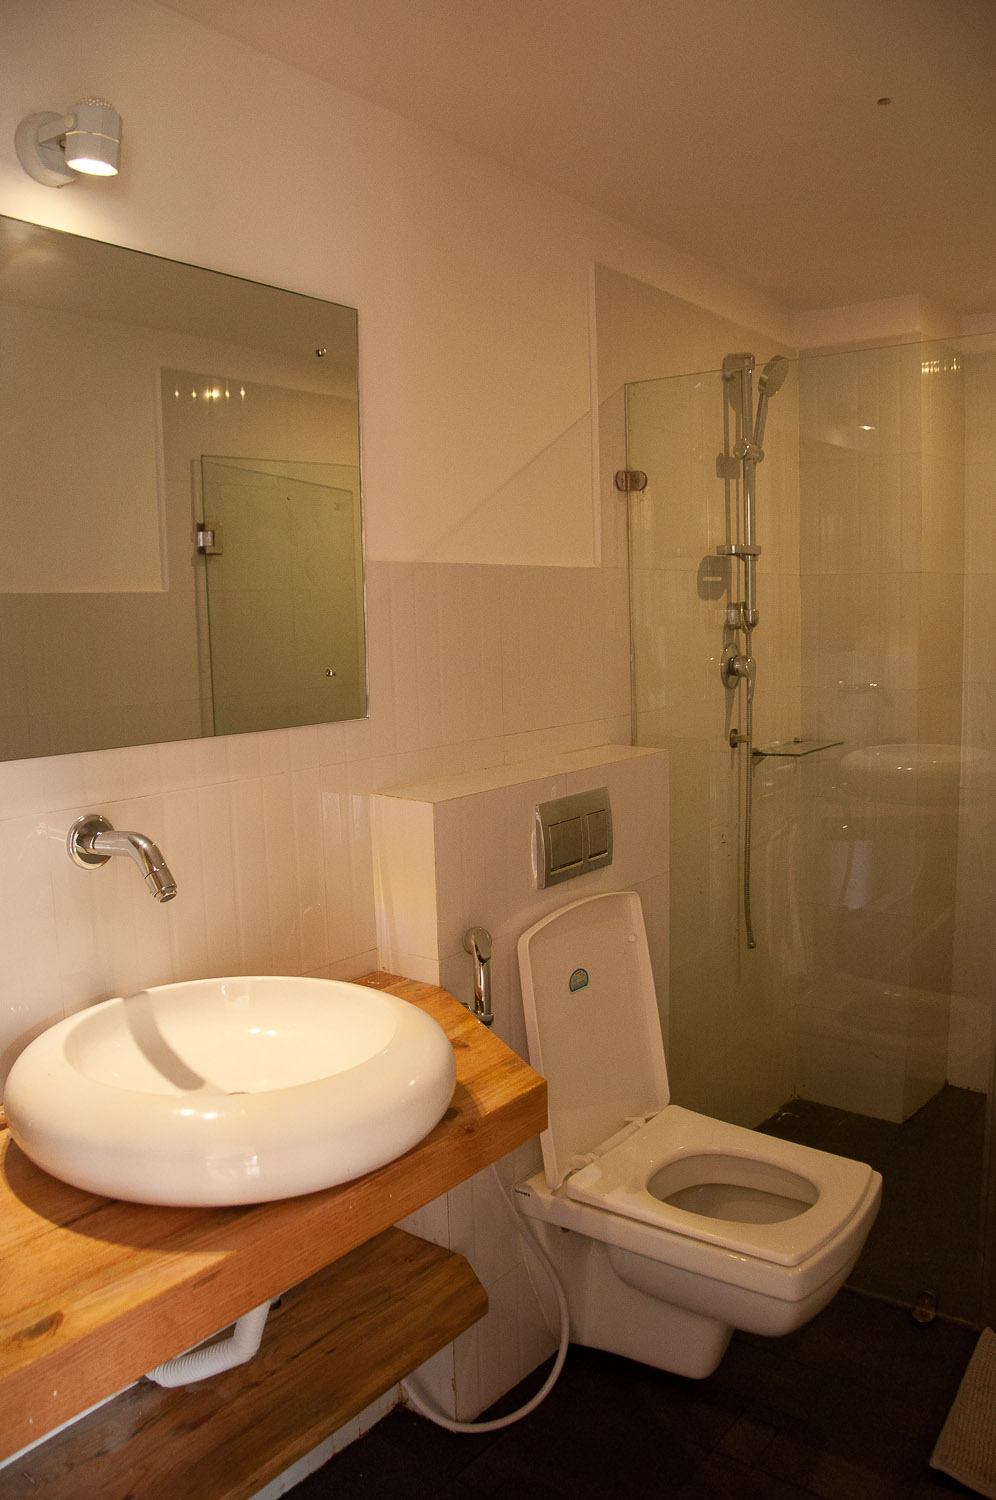 Each bedroom has its own private bathroom with hot water facility.